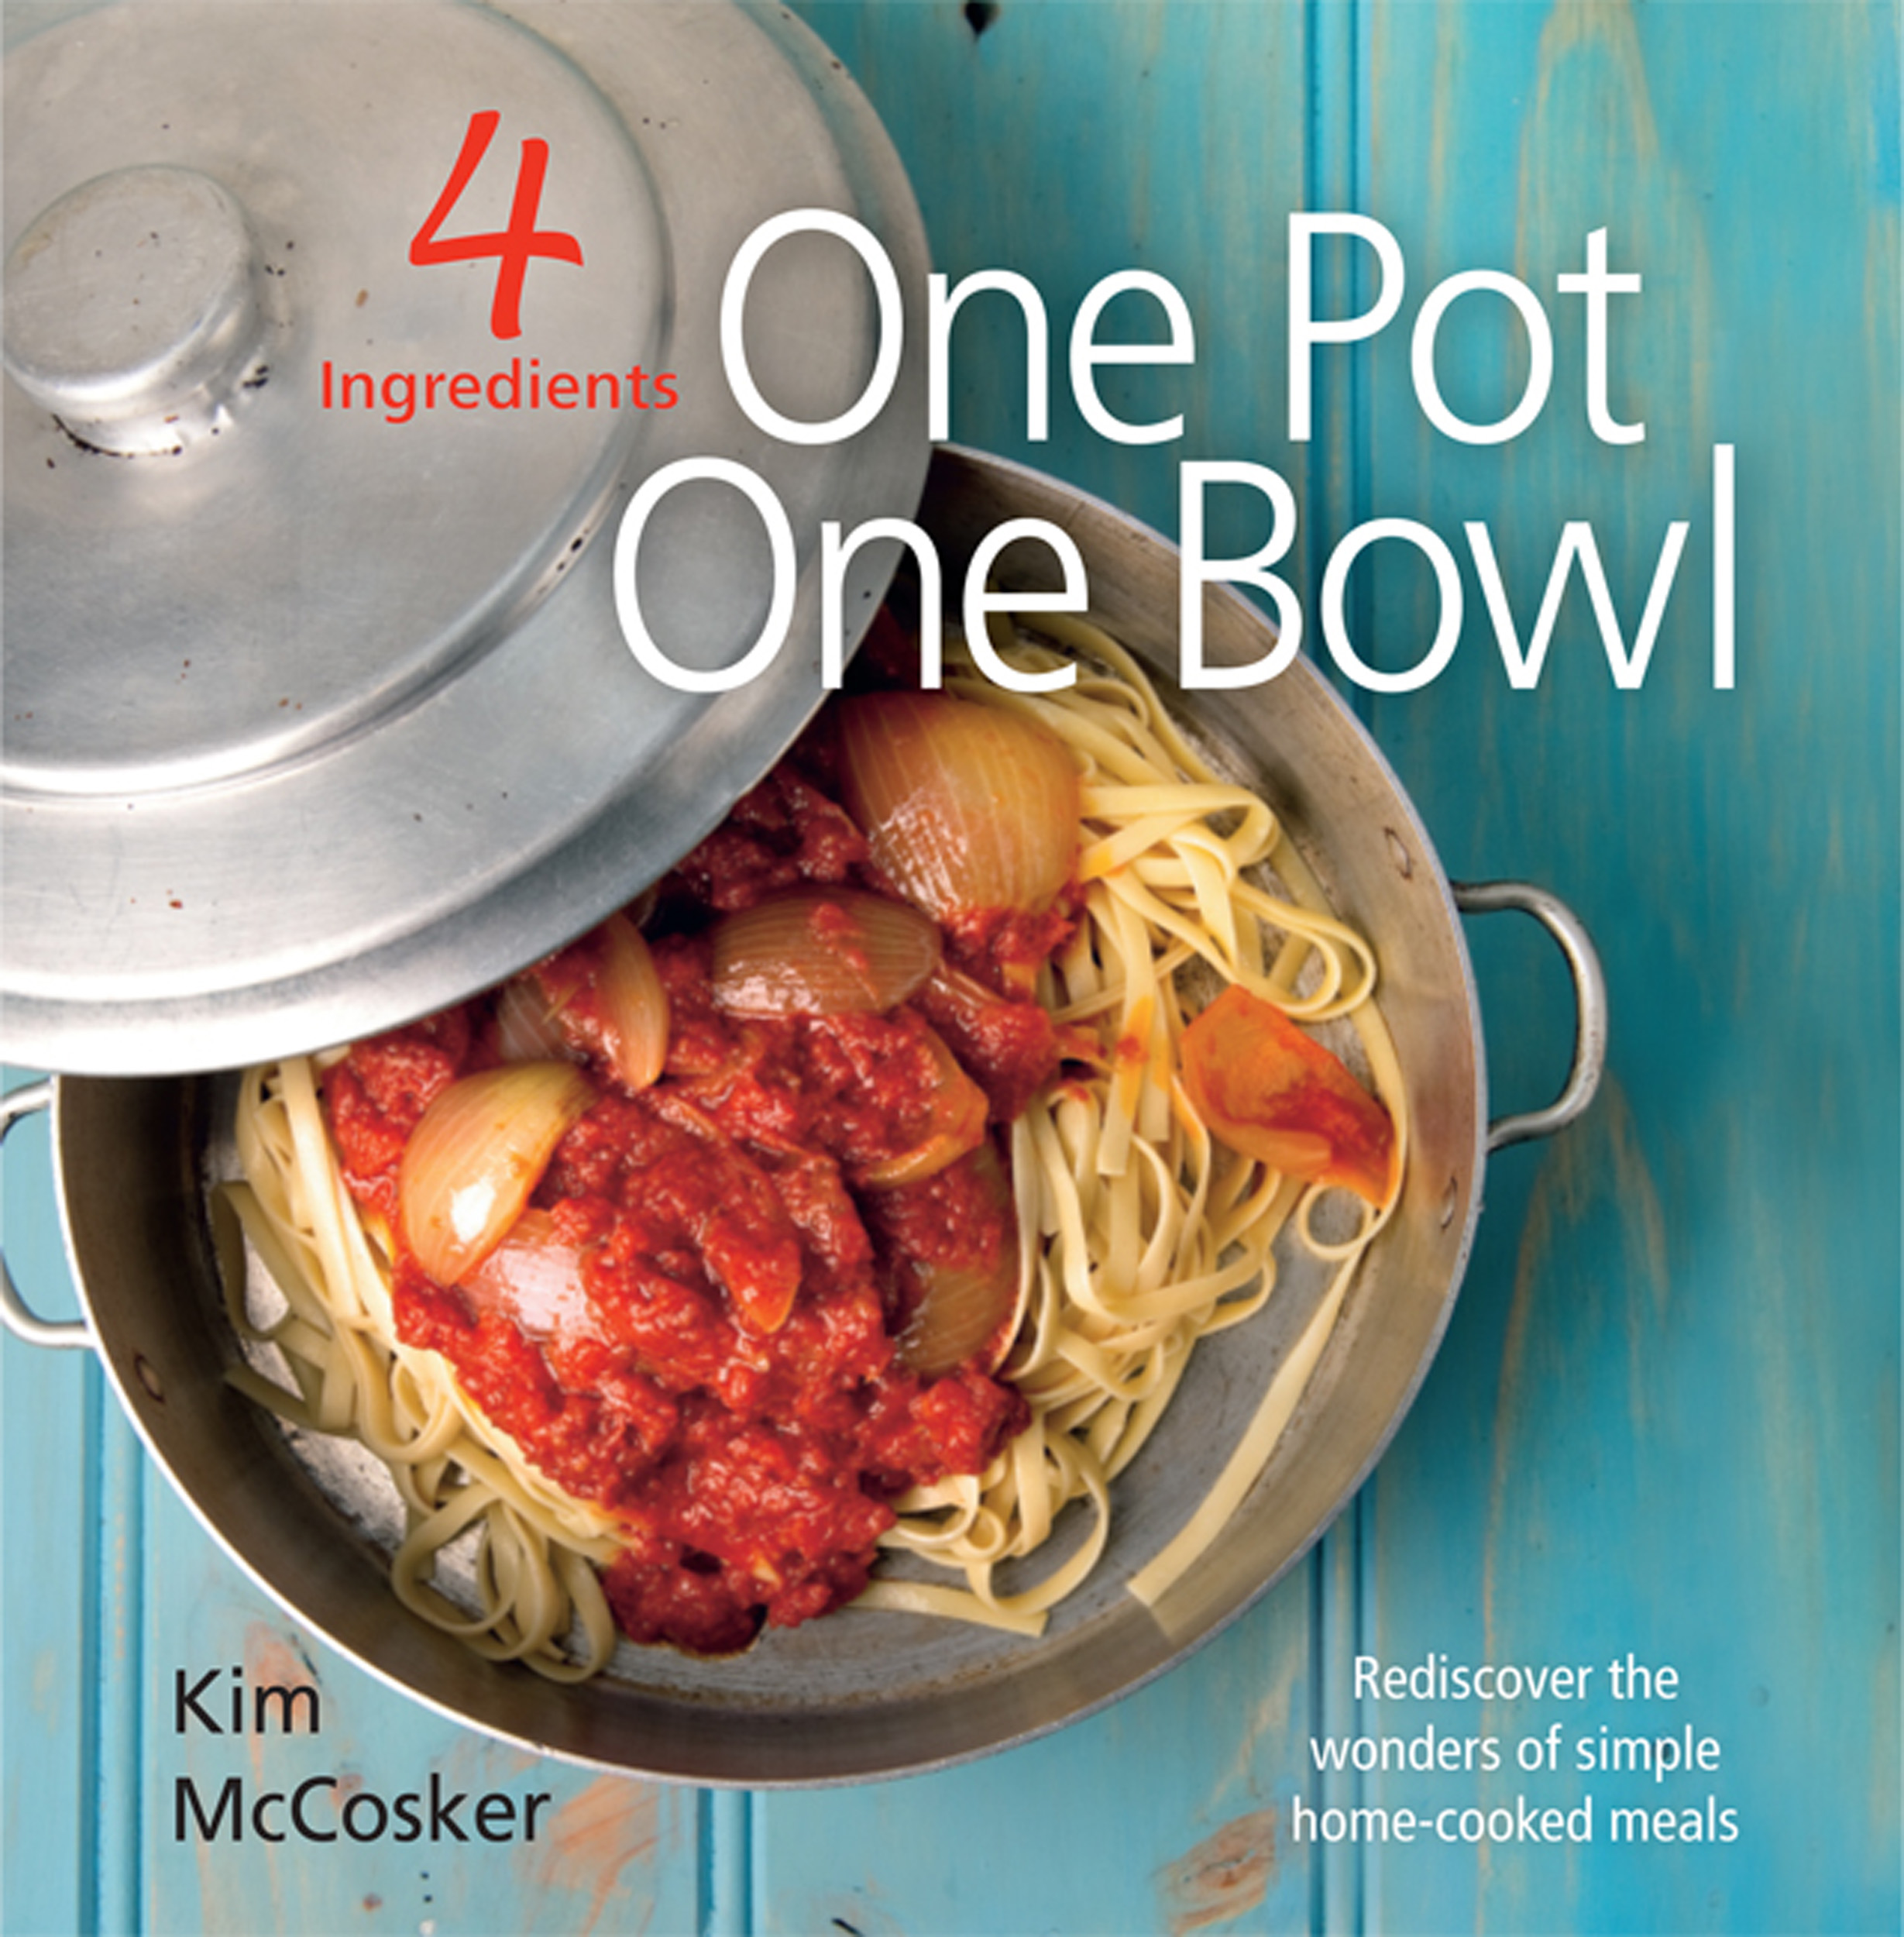 4 ingredients one pot one bowl book by kim mccosker kim mccosker book cover image jpg 4 ingredients one pot one bowl forumfinder Choice Image